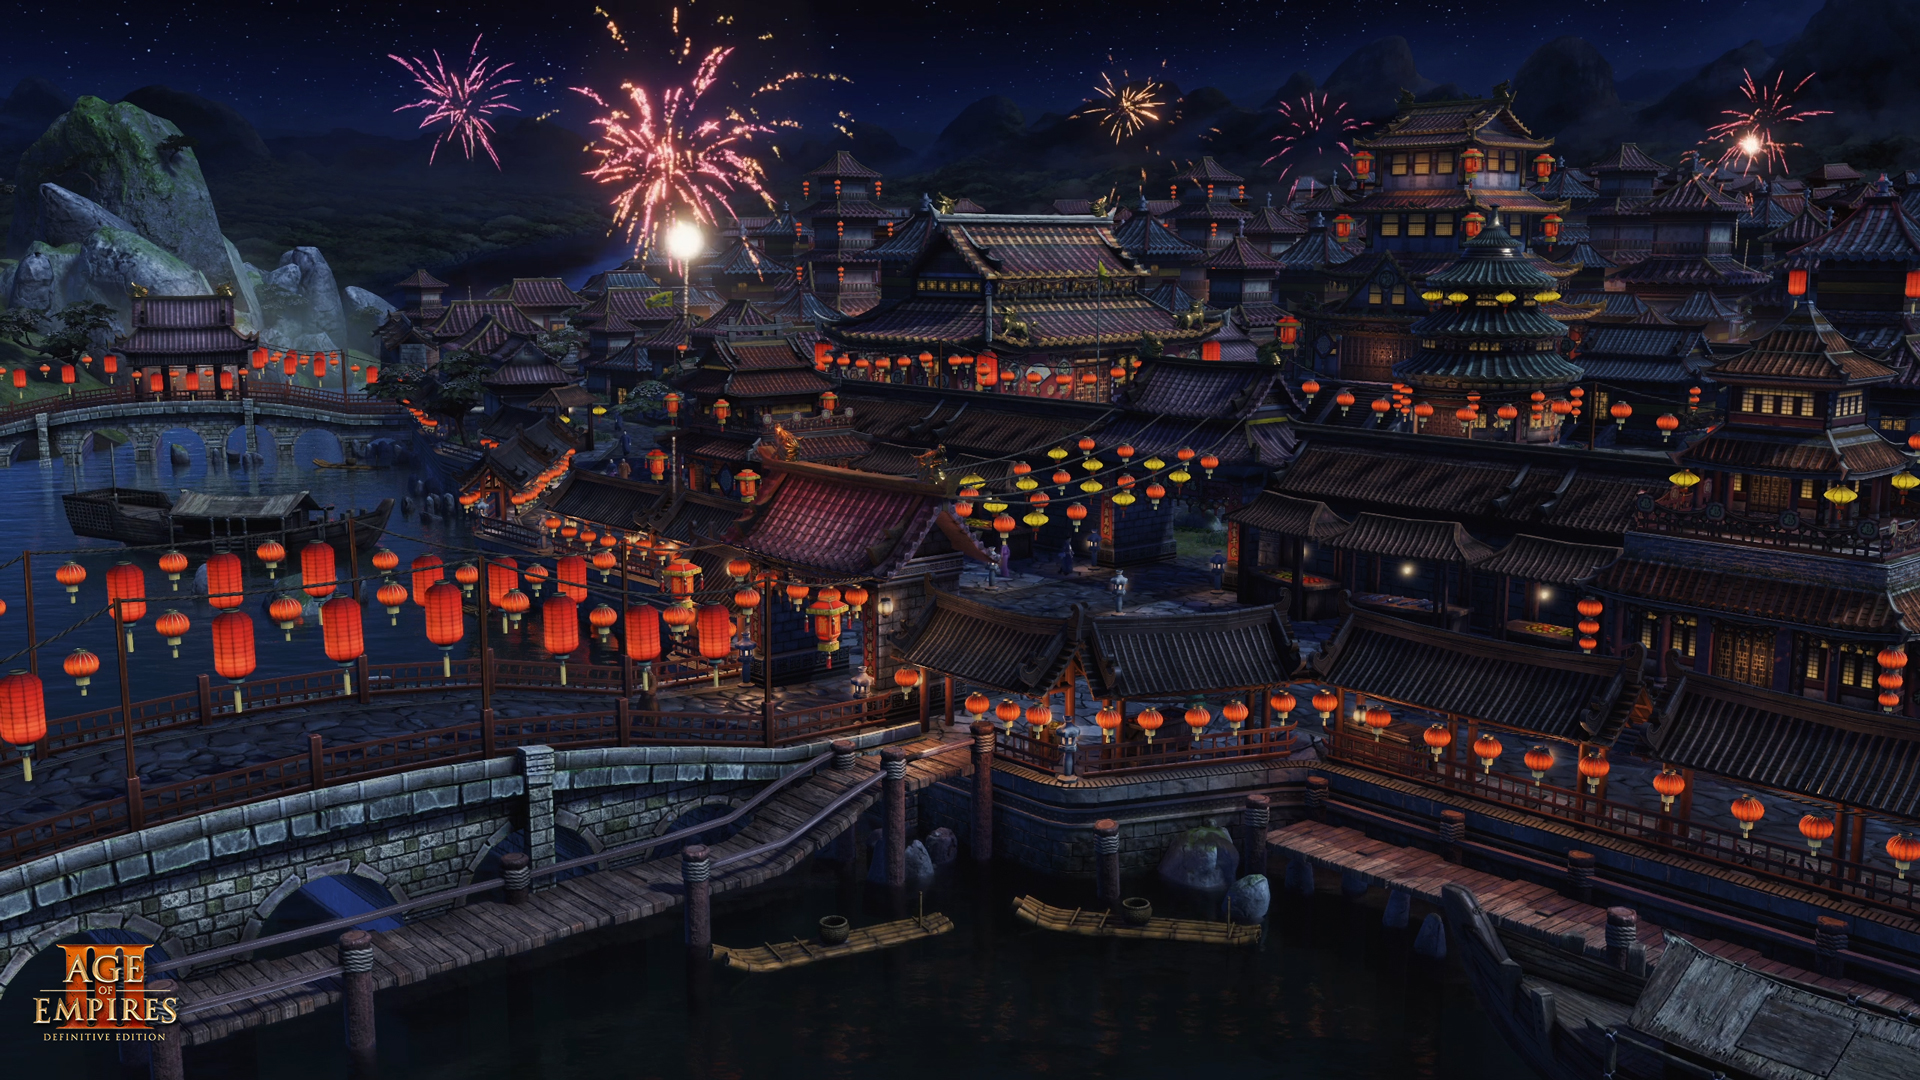 Age of Empires III: Definitive Edition - Lunar New Year Festival